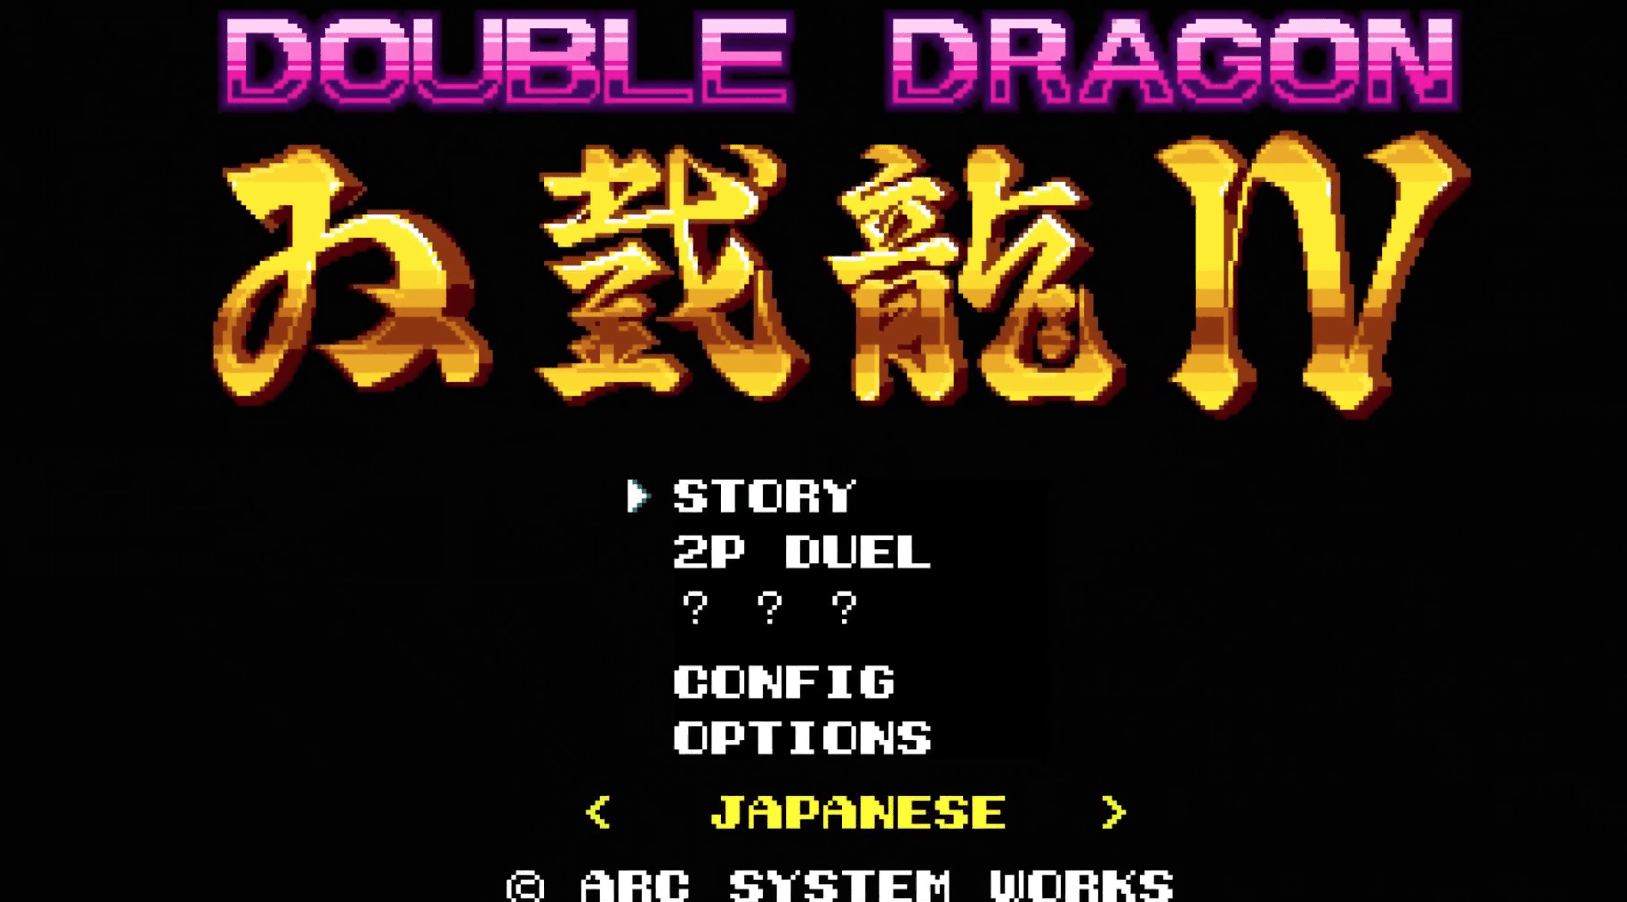 Double Dragon IV lands on PC and PS4 January 30